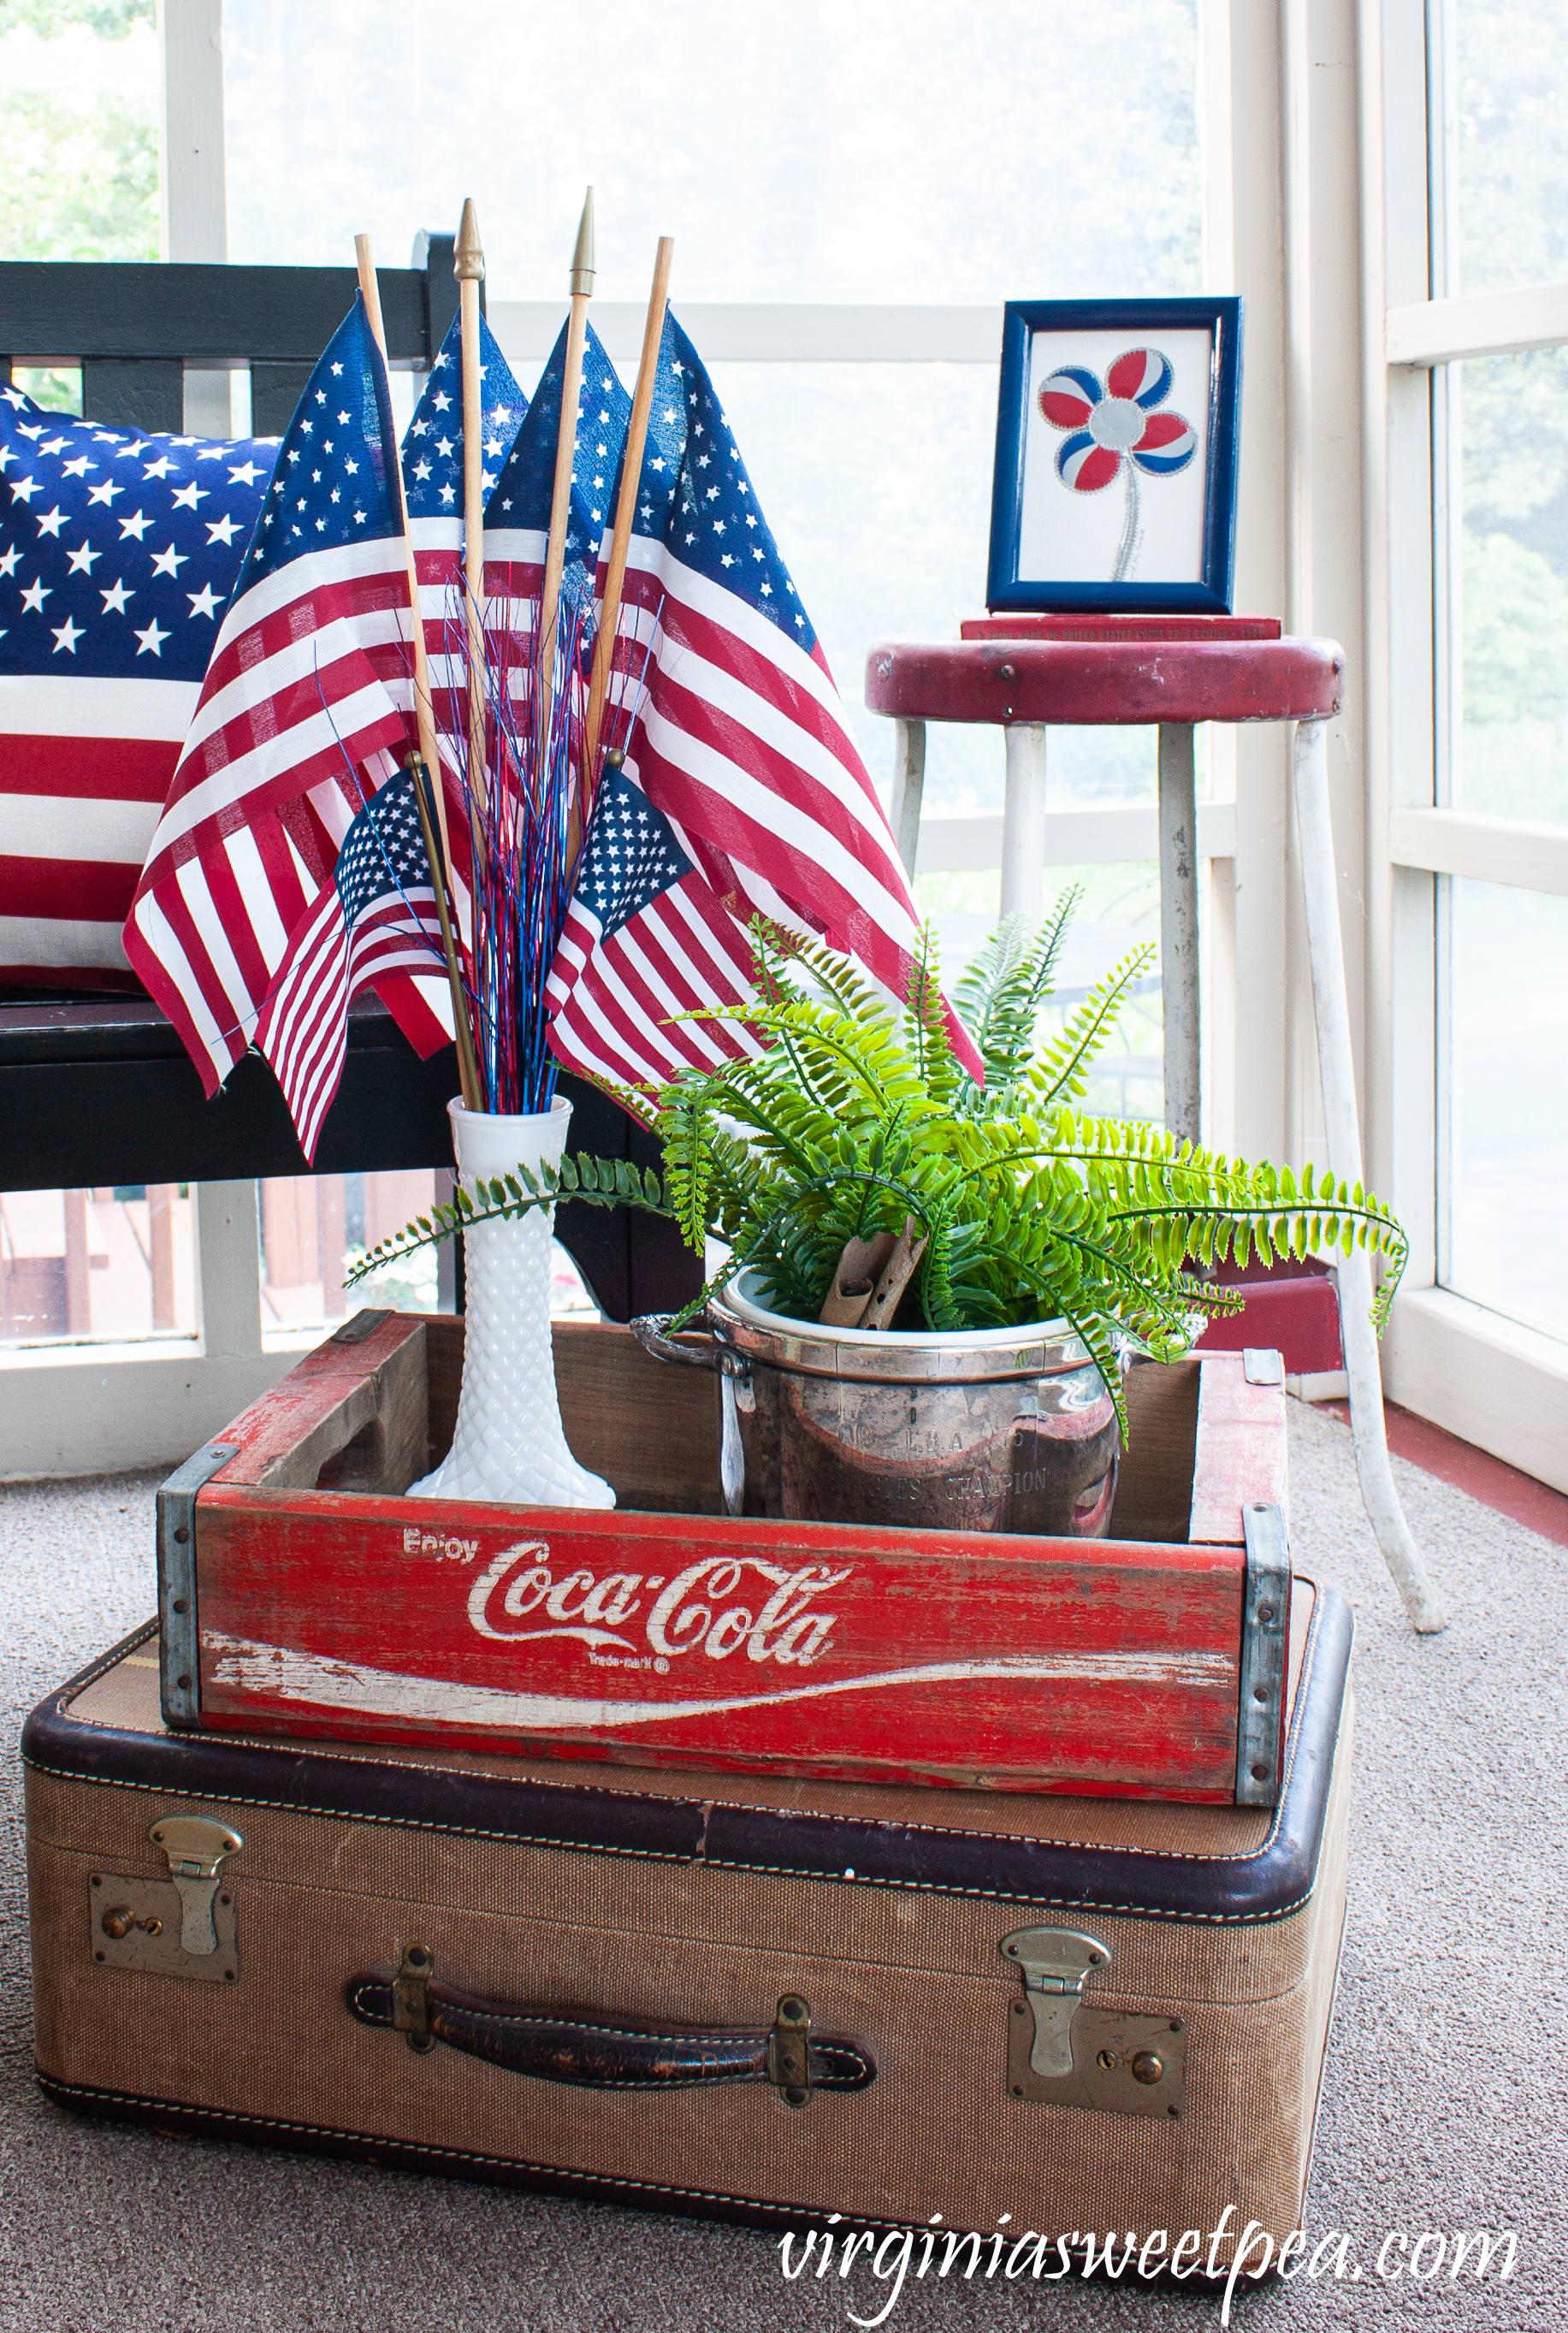 Patriotic display with a Coke crate, vintage suitcase, and milk glass vase filled with flags.